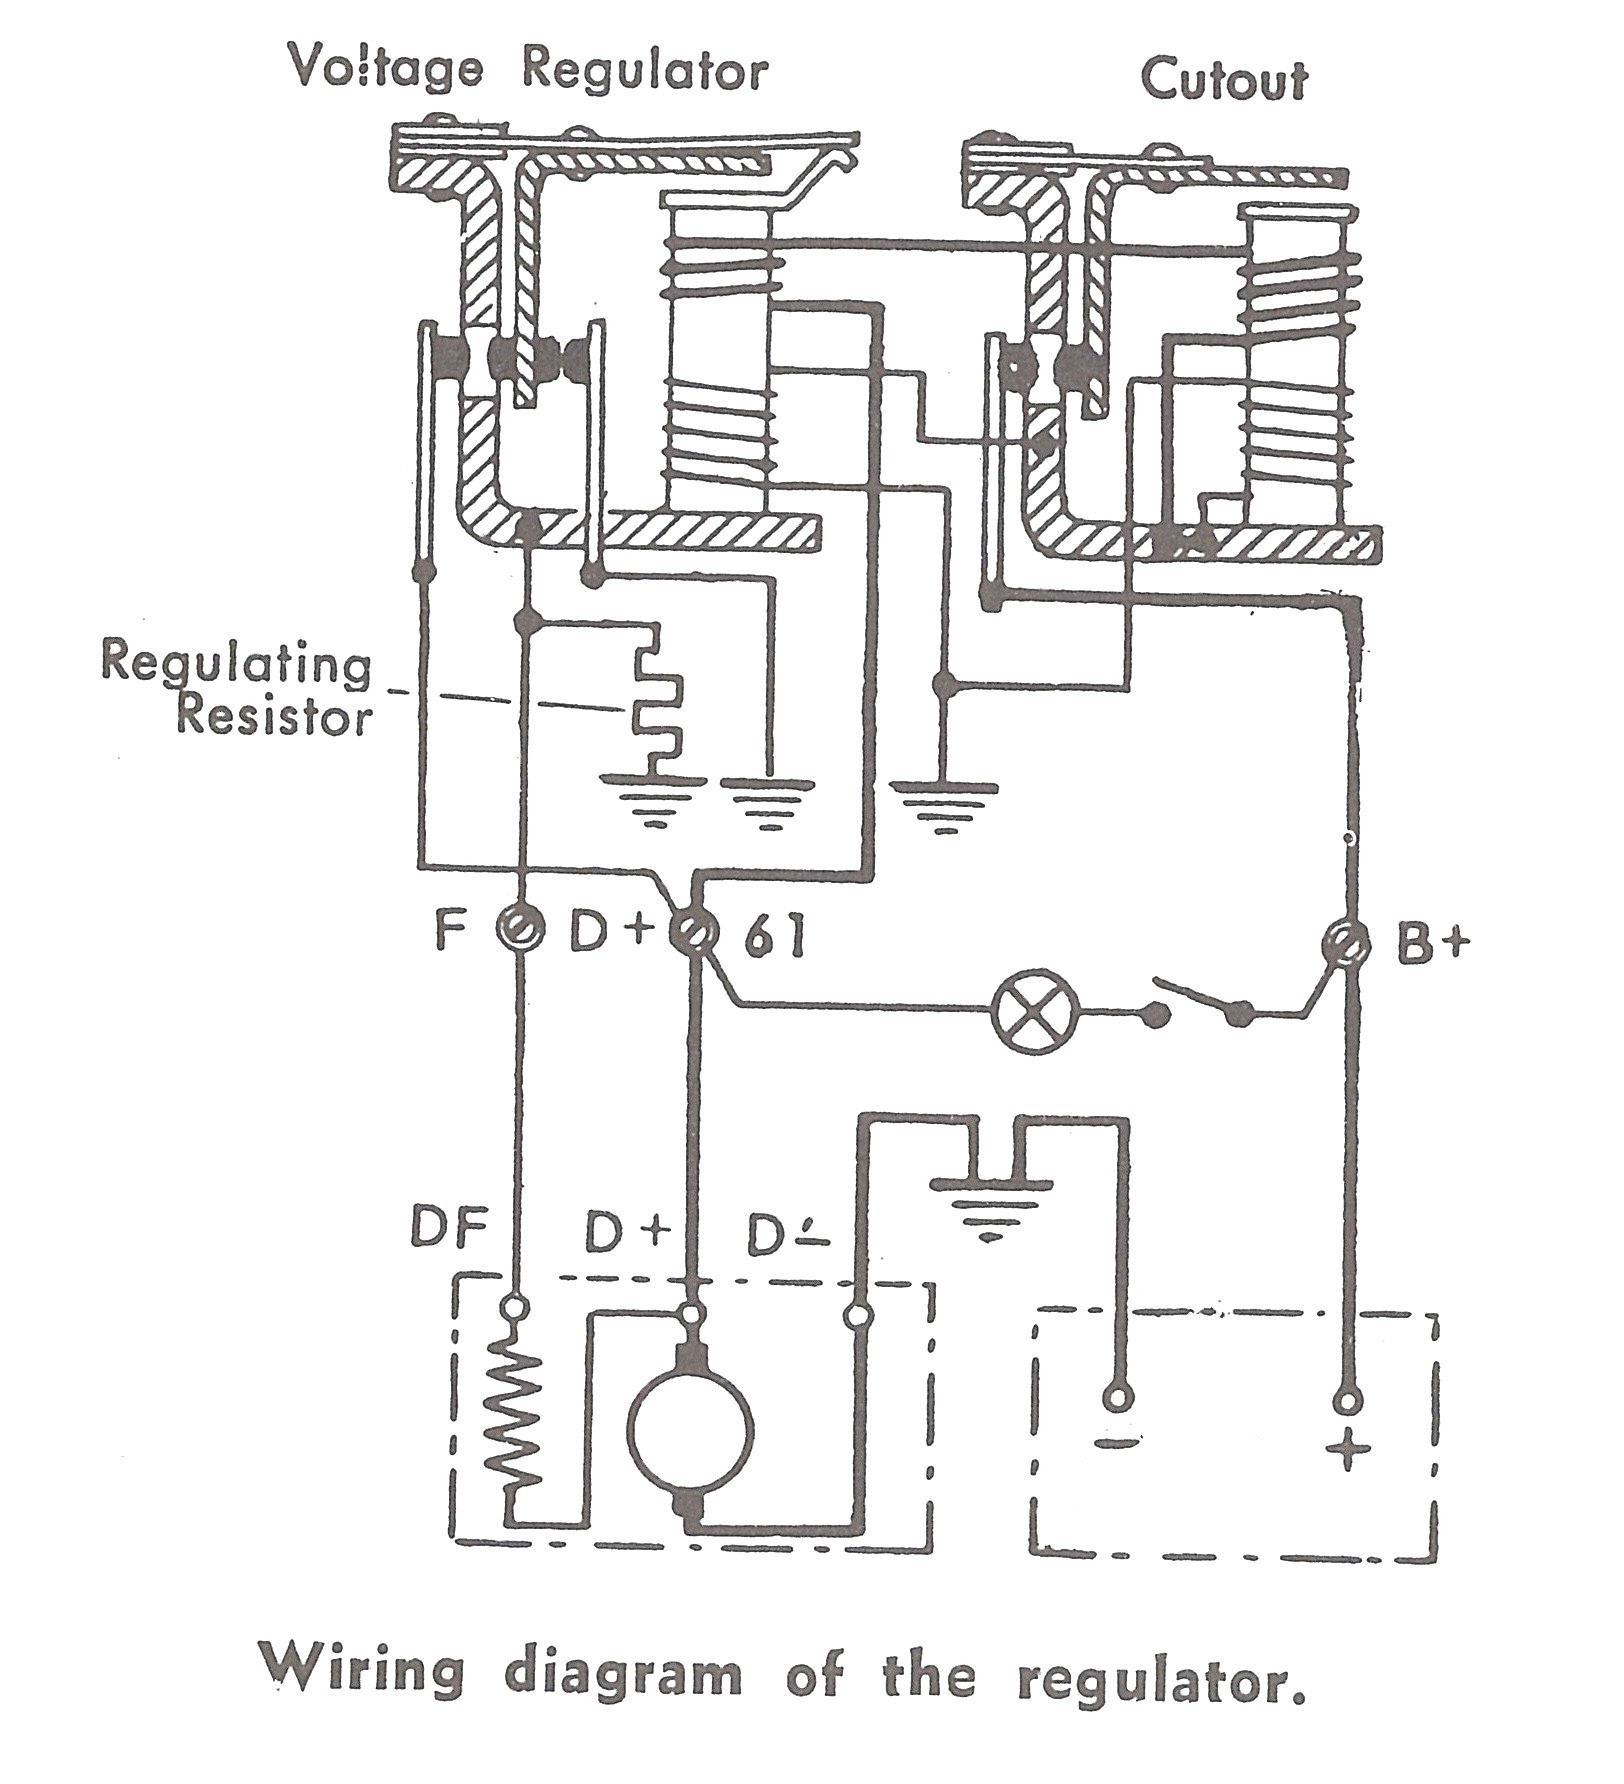 Voltage Regulator Wire Diagram